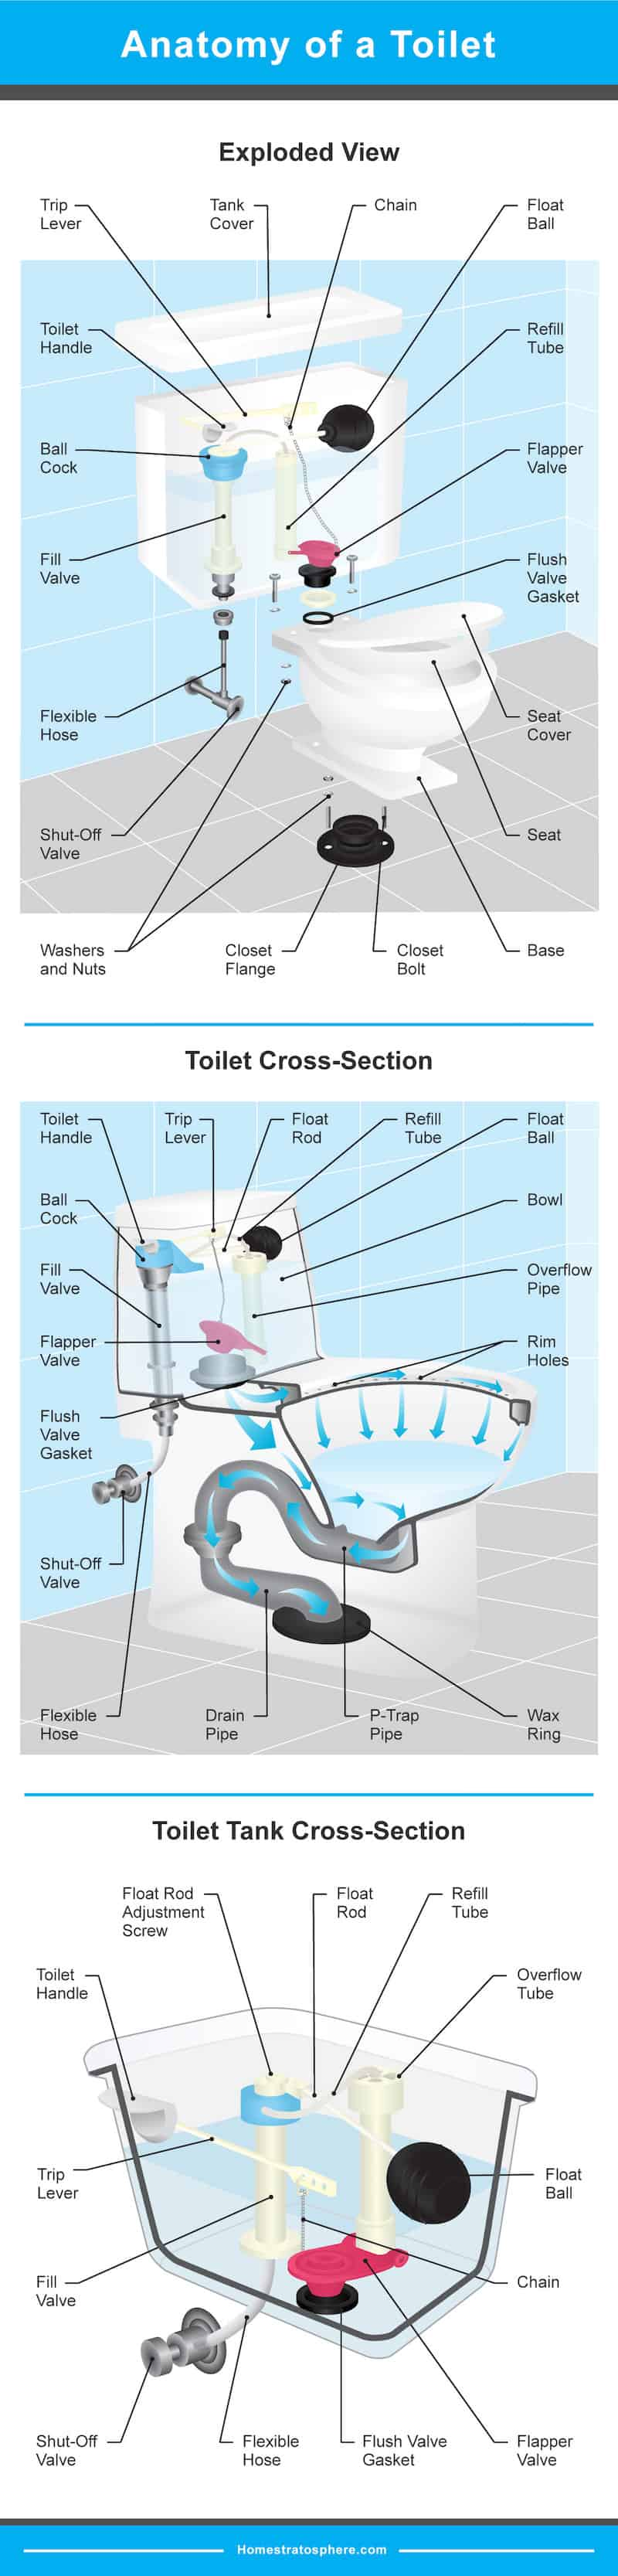 Cross section diagram of a bathroom toilet